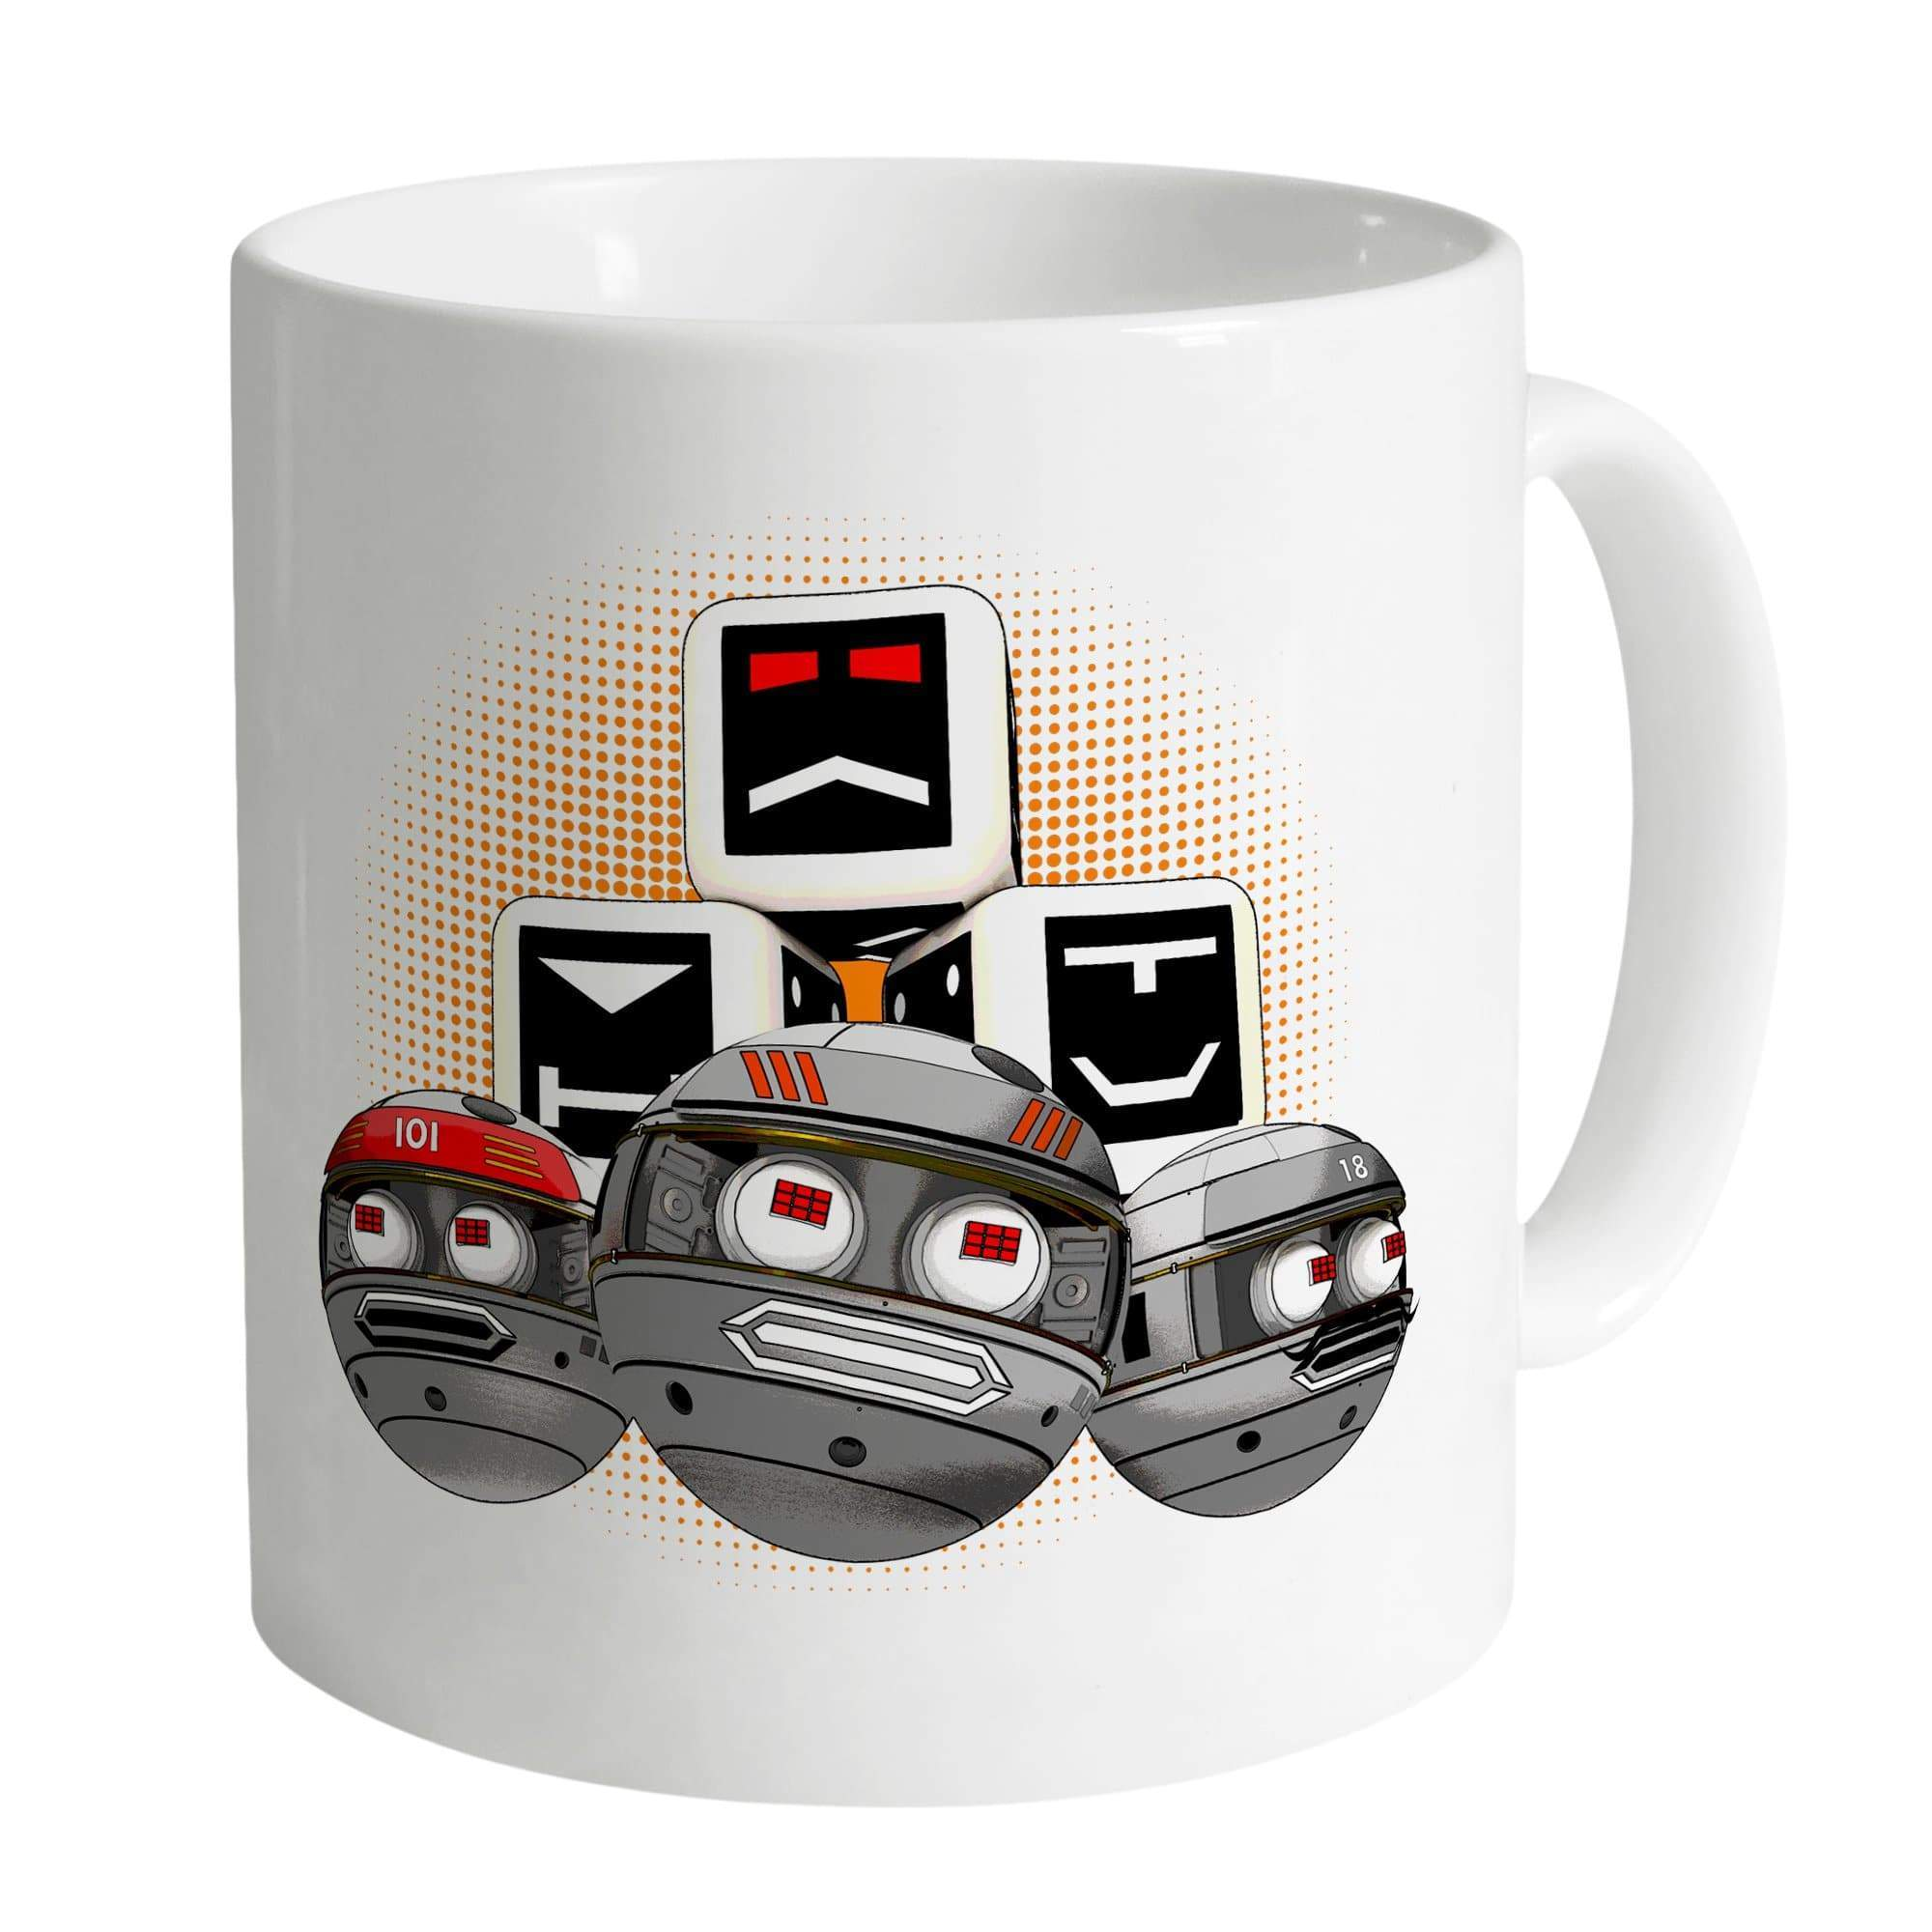 Terrahawks Zeroids and Cubes Design White Mug [Official & Exclusive] - The Gerry Anderson Store